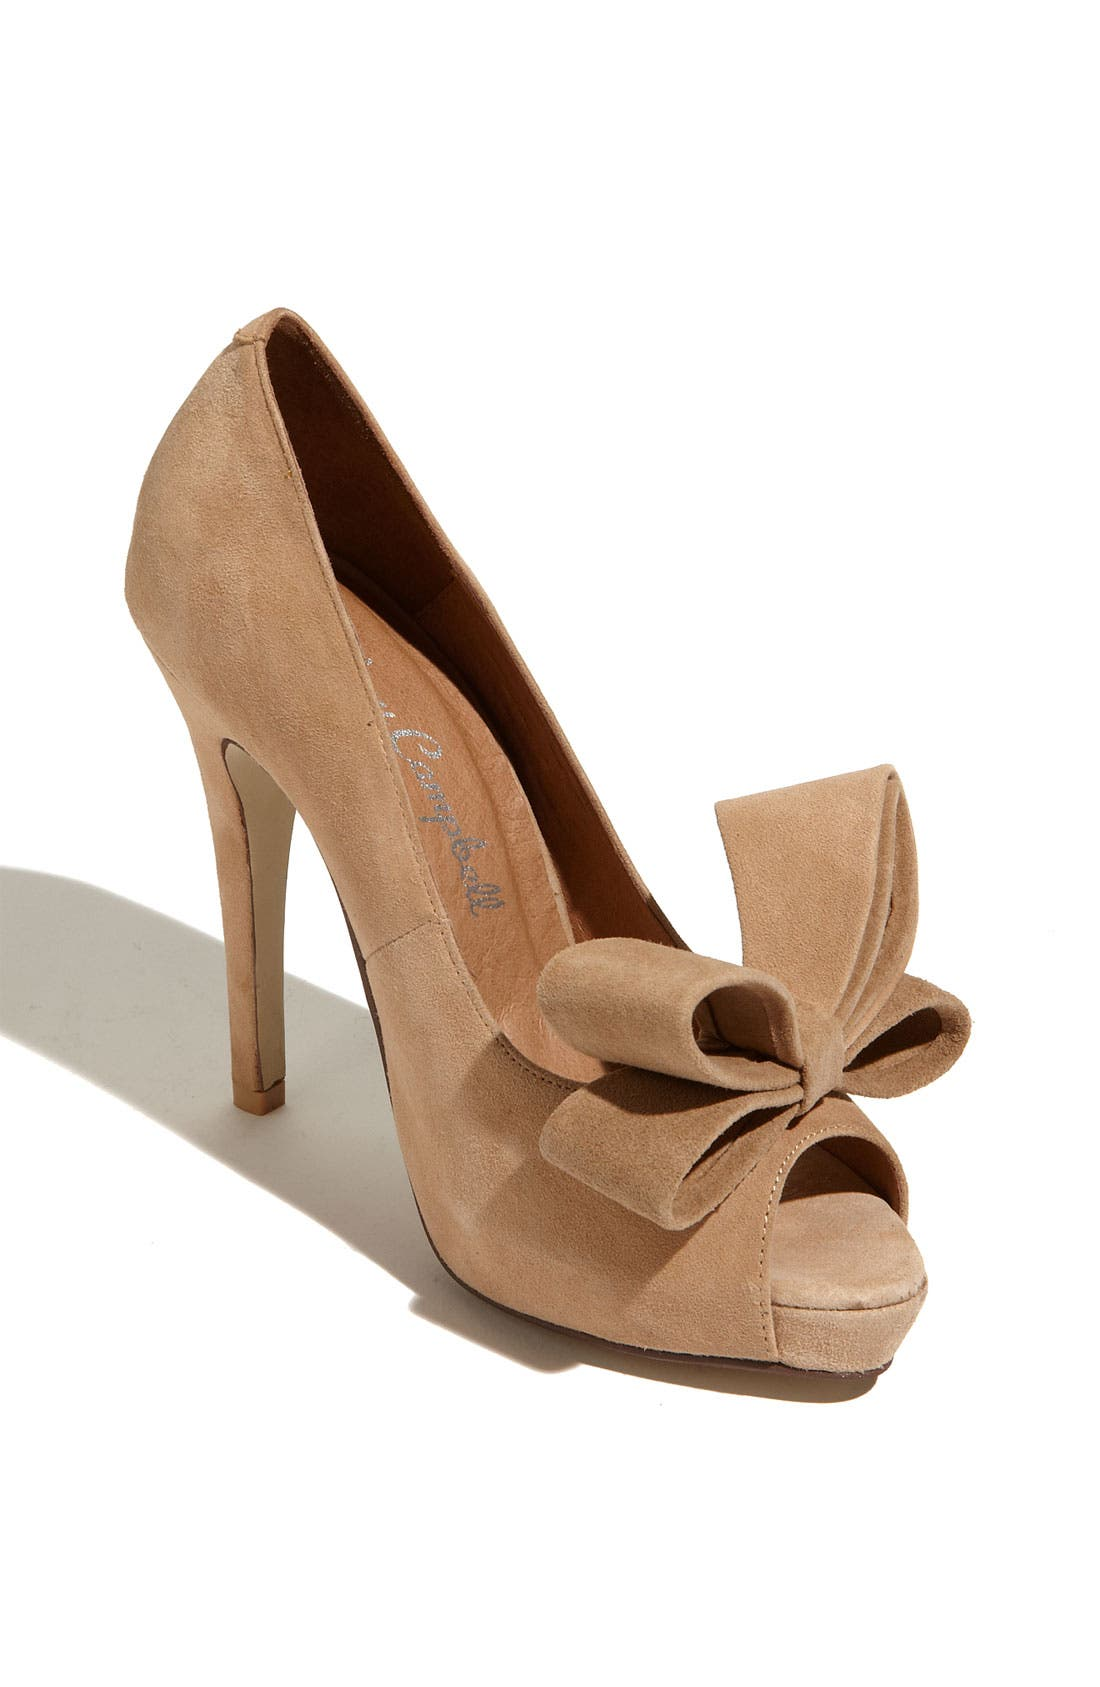 Alternate Image 1 Selected - Jeffrey Campbell 'Garret' Pump